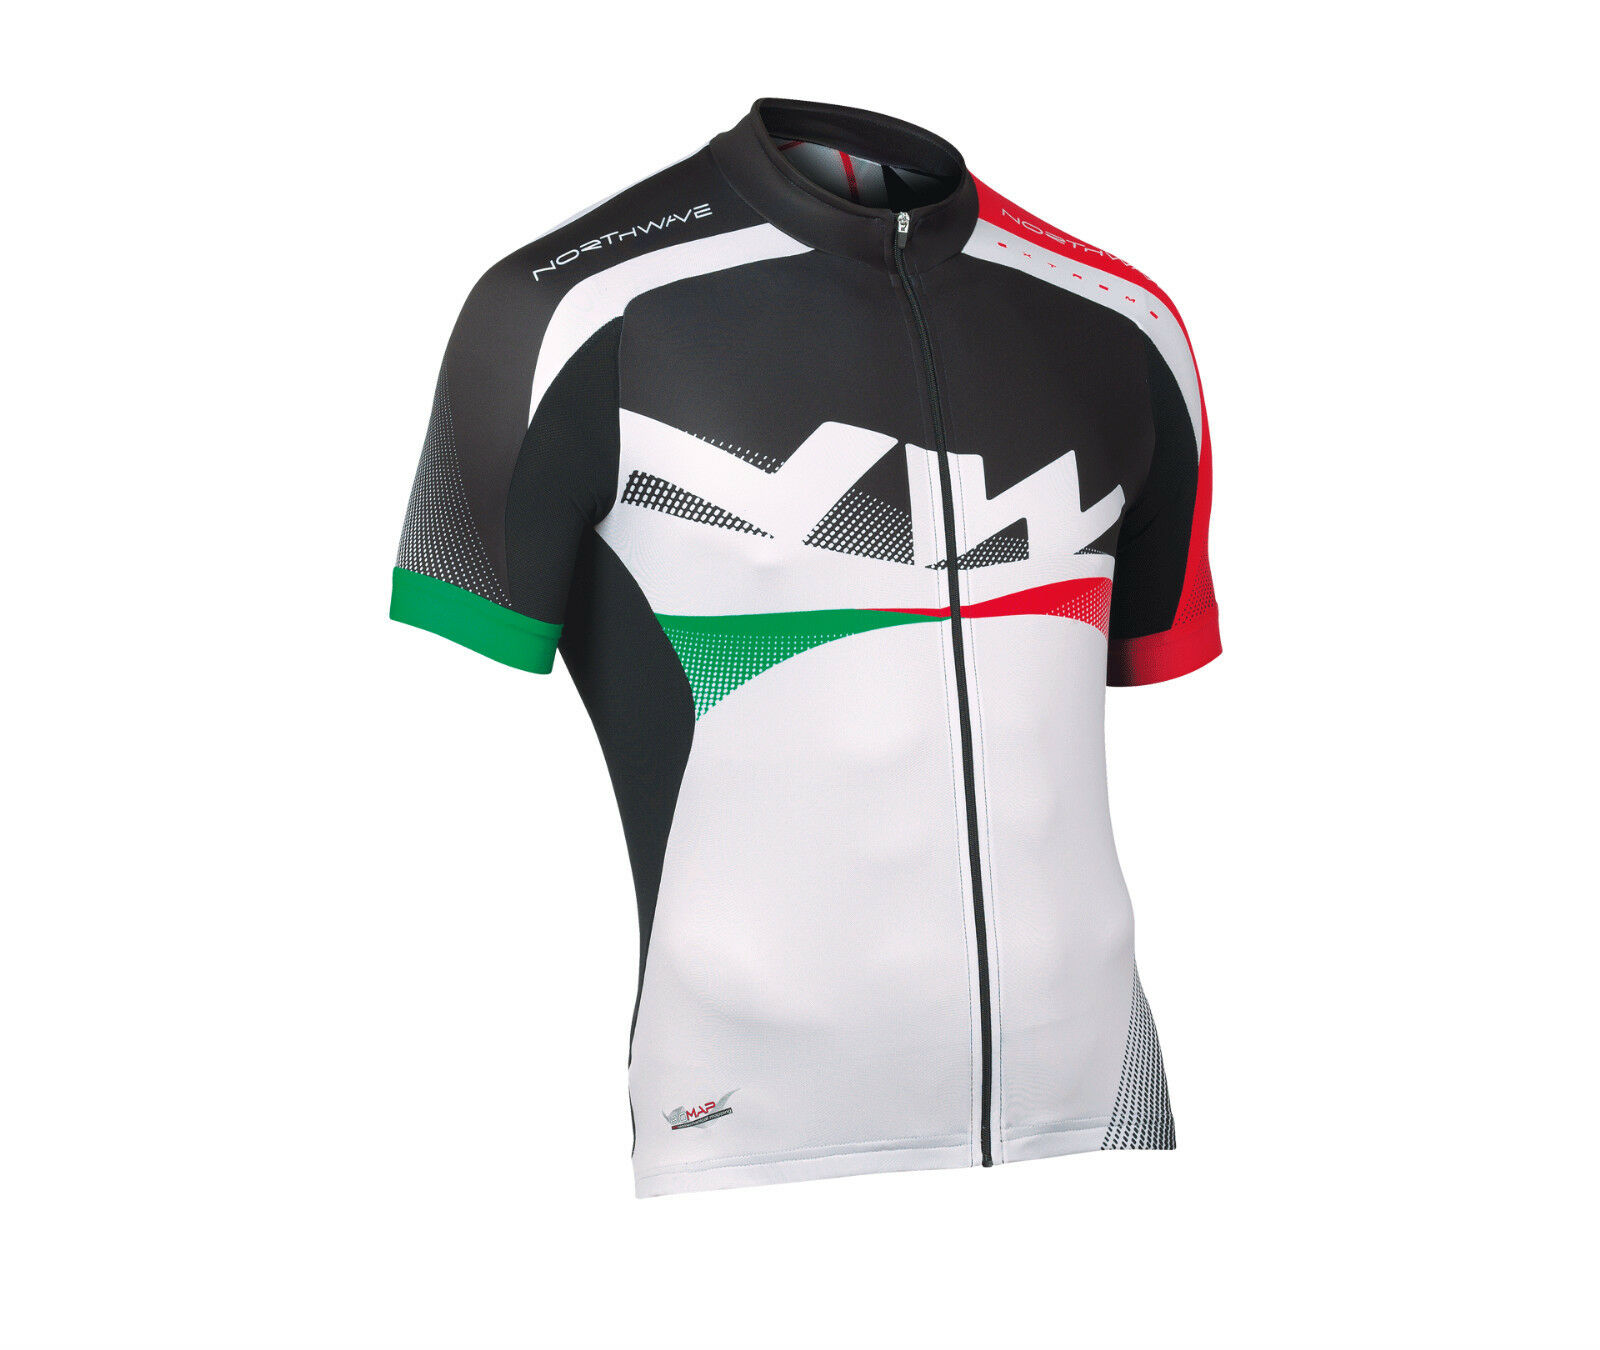 Maglia Maglietta M corta NORTHWAVE  EXTREME White Red Green JERSEY NORTHWAVE EXTR  wholesale cheap and high quality